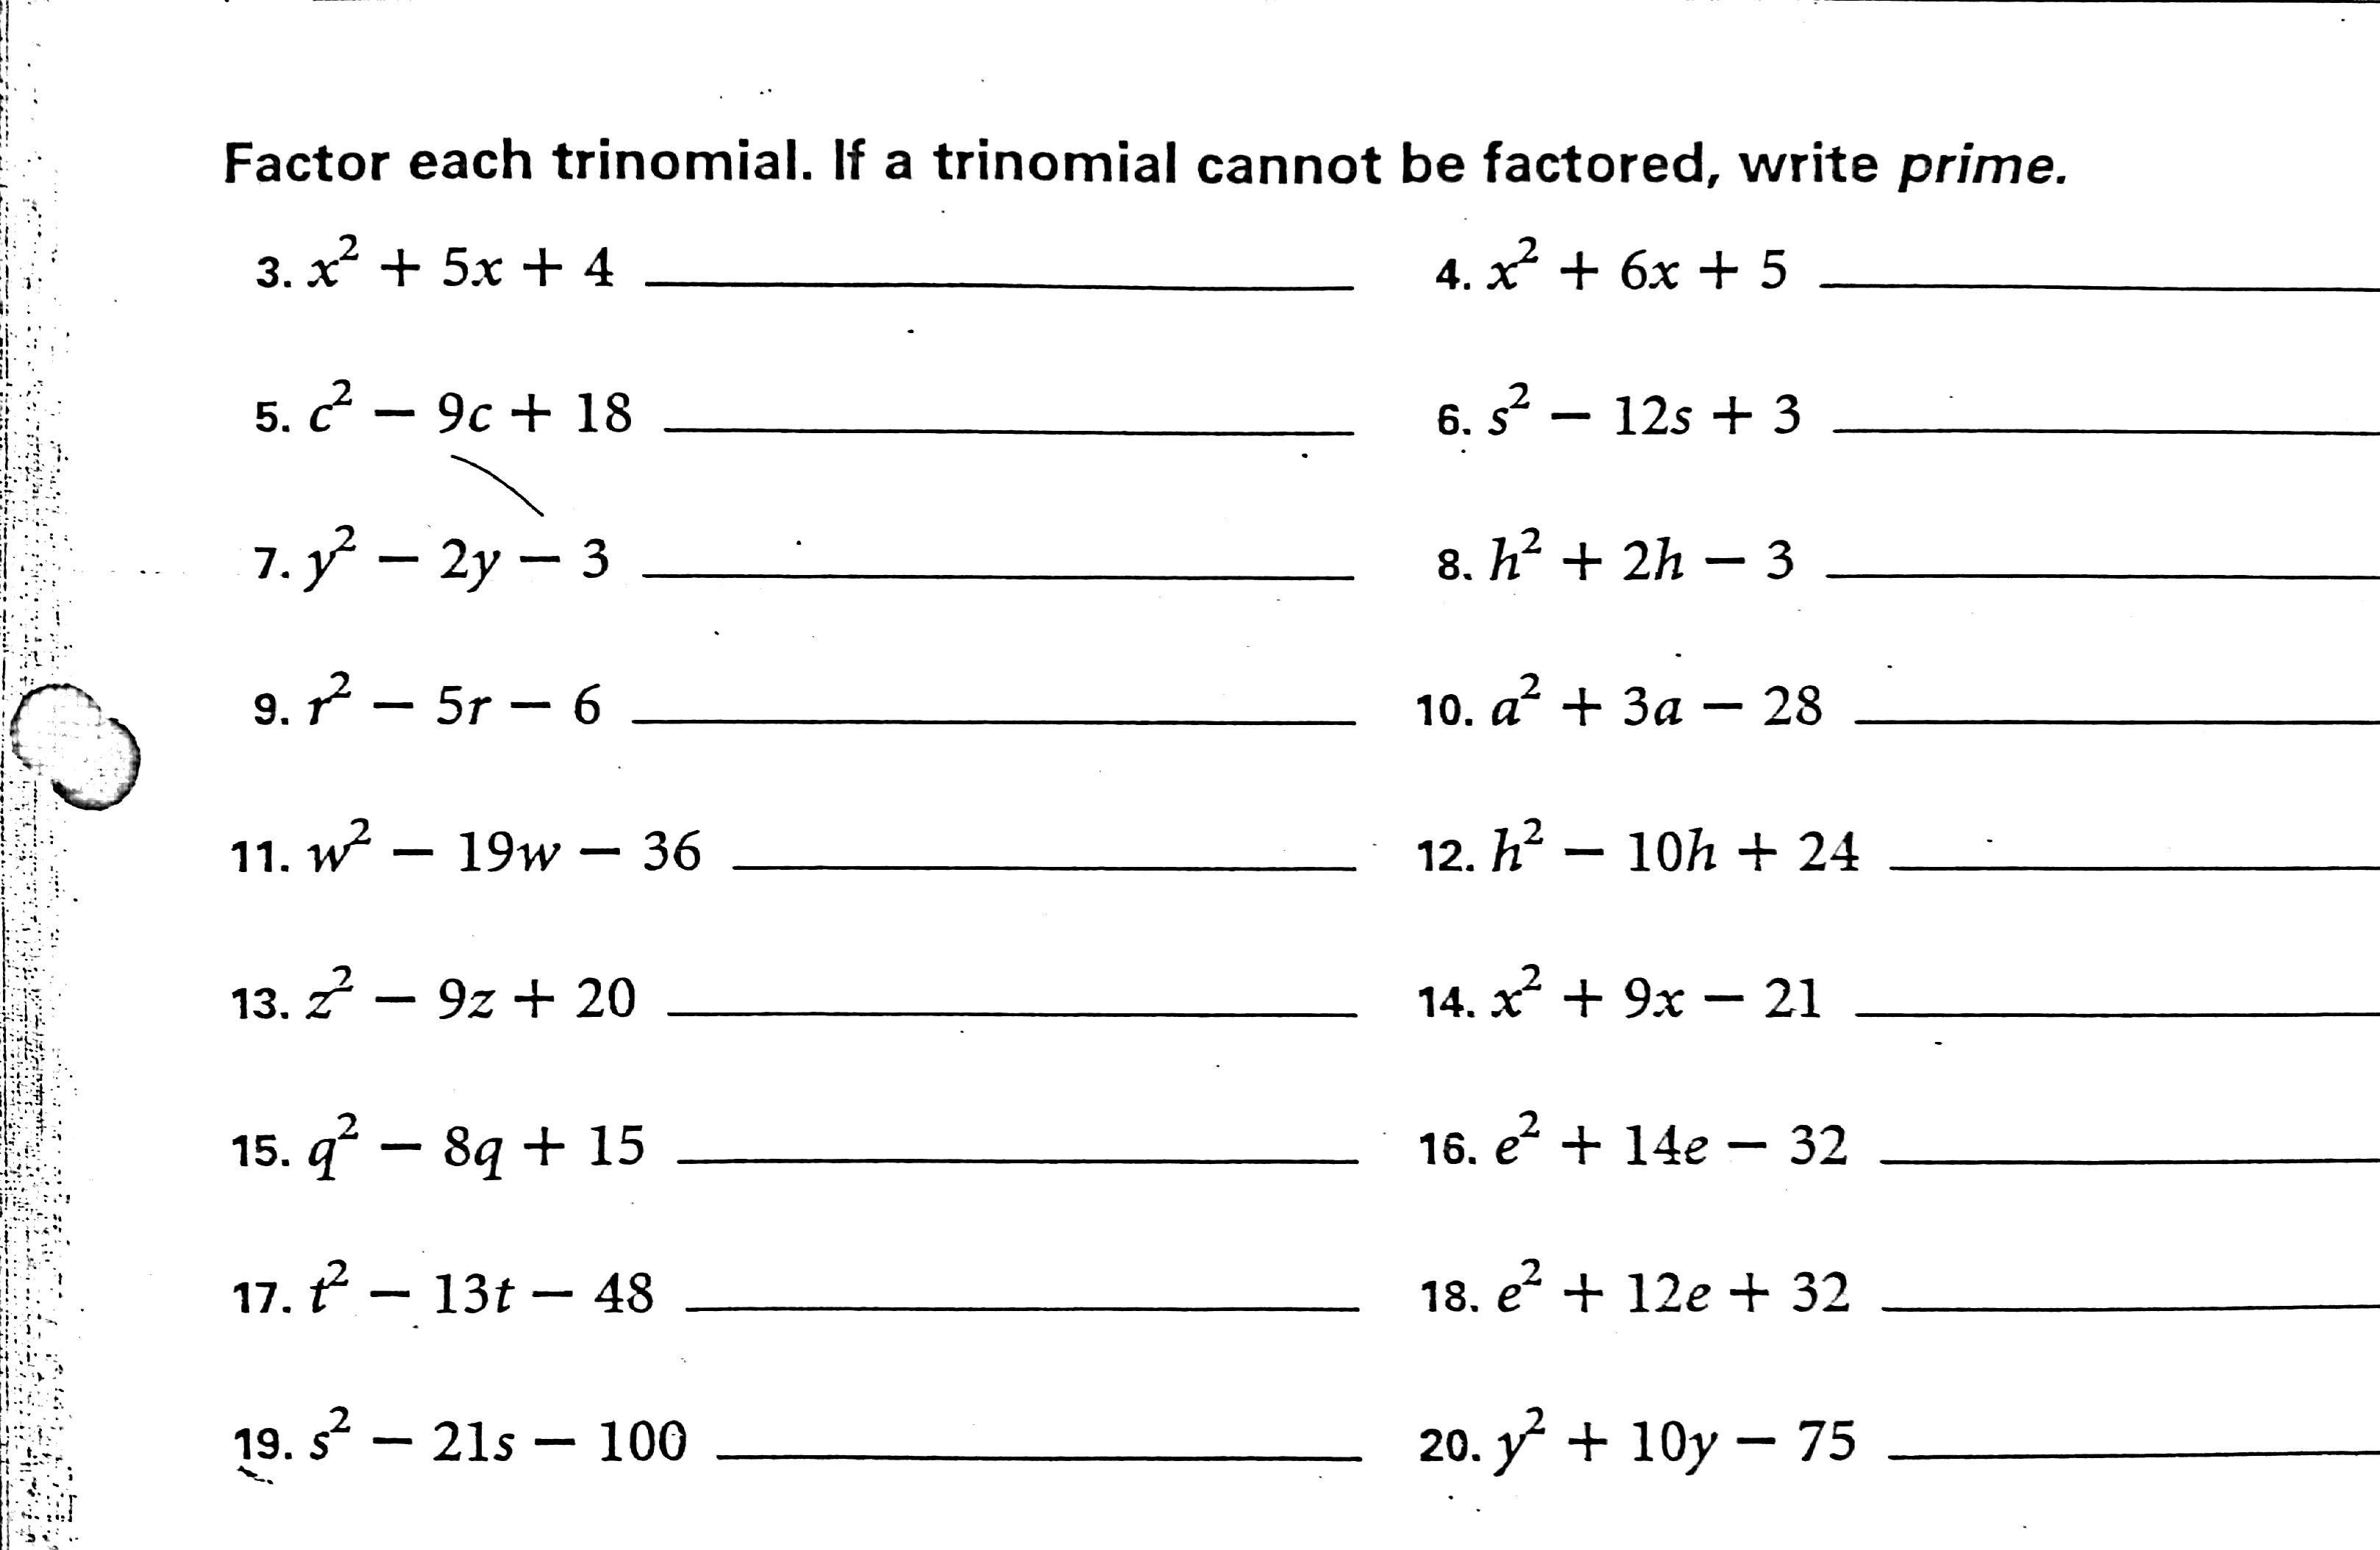 Worksheets Factoring Polynomials Worksheet factoring polynomials completely worksheet fioradesignstudio monday trinomials classwork 3 19 odd on worksheet